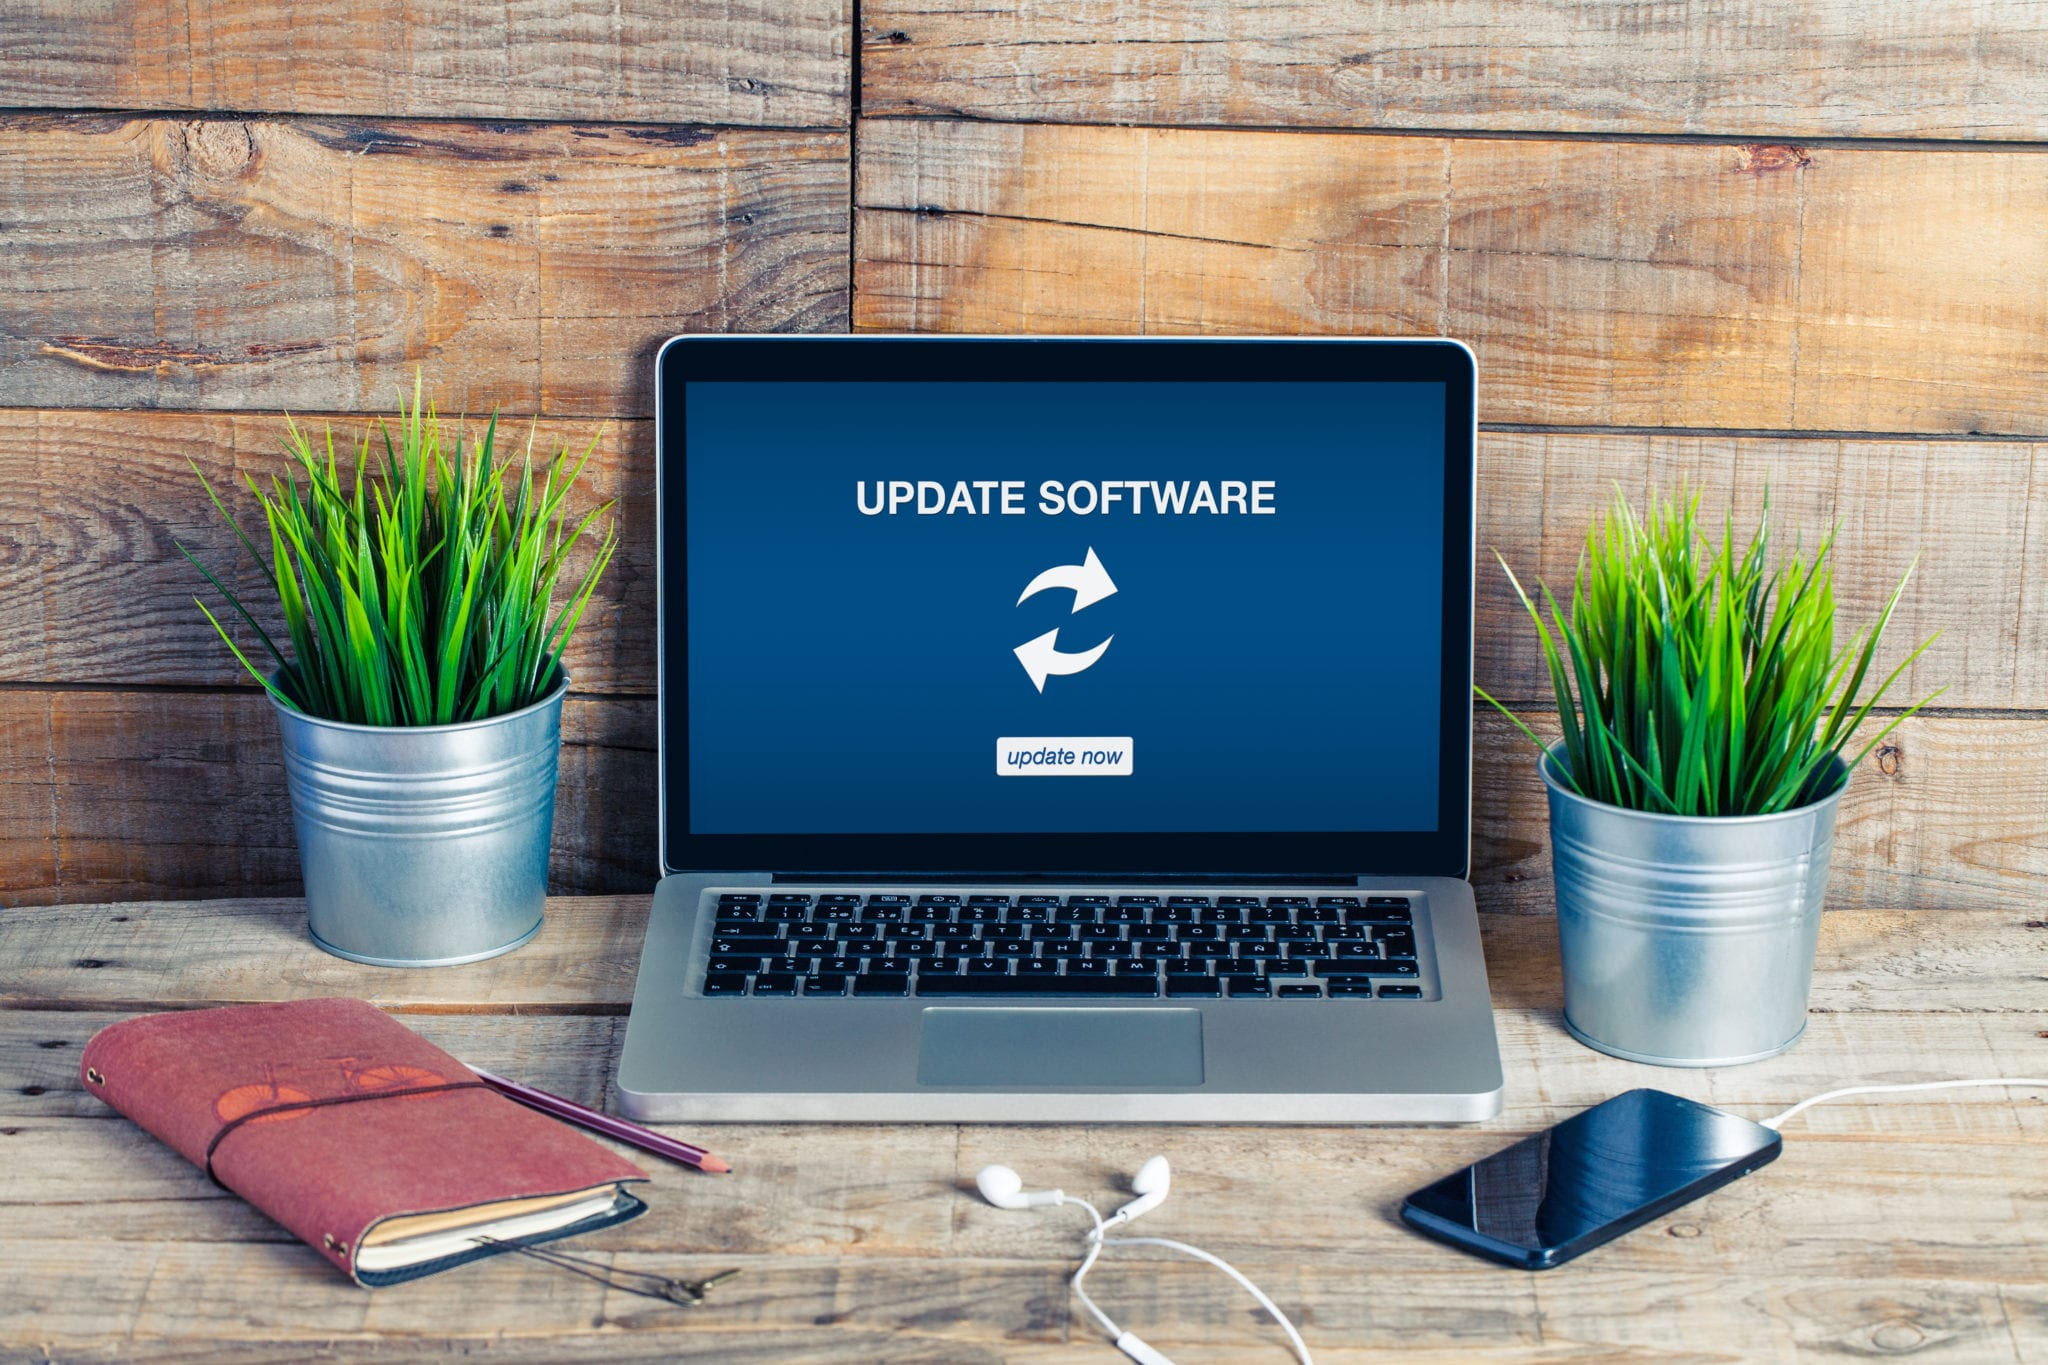 upgrade-immediately-drupal-756-drupal-834-have-been-released-contain-security-fixes.jpeg